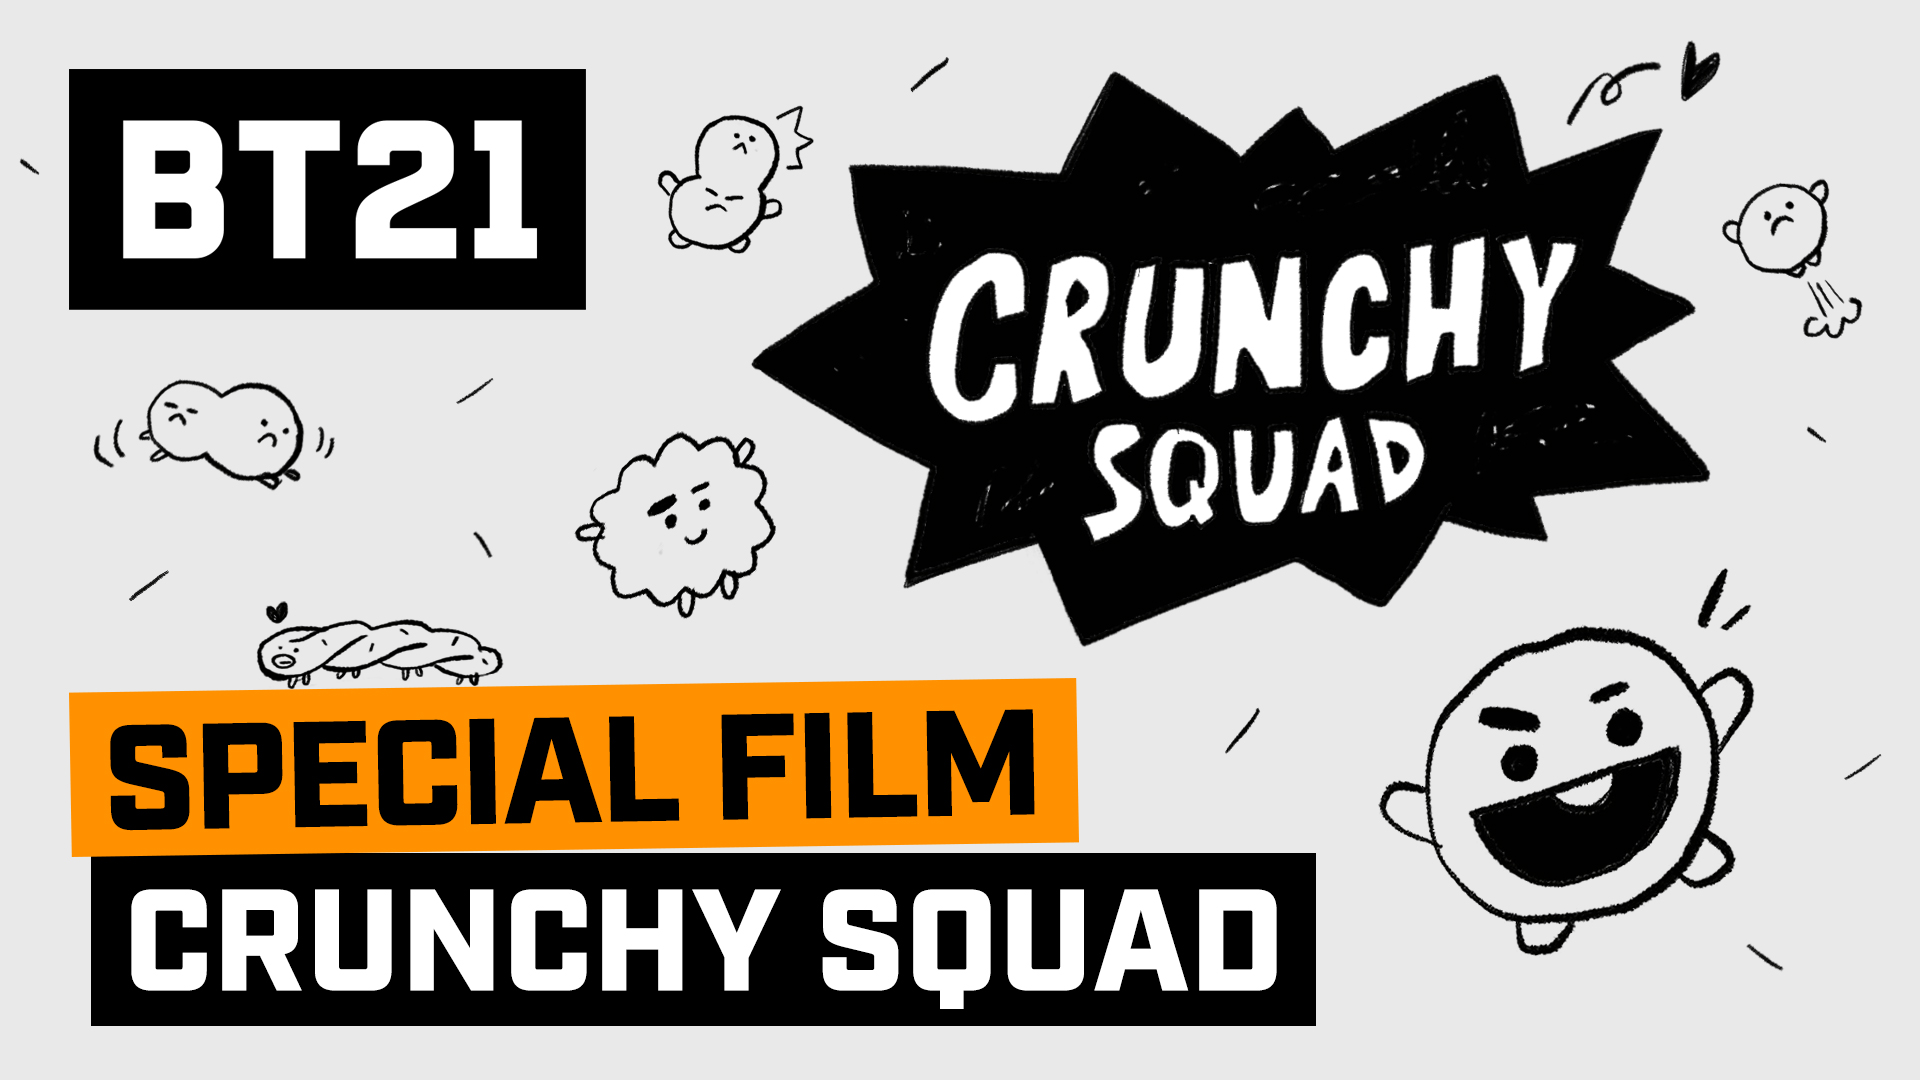 [BT21] CRUNCHY SQUAD created by BT21 LOVERS!